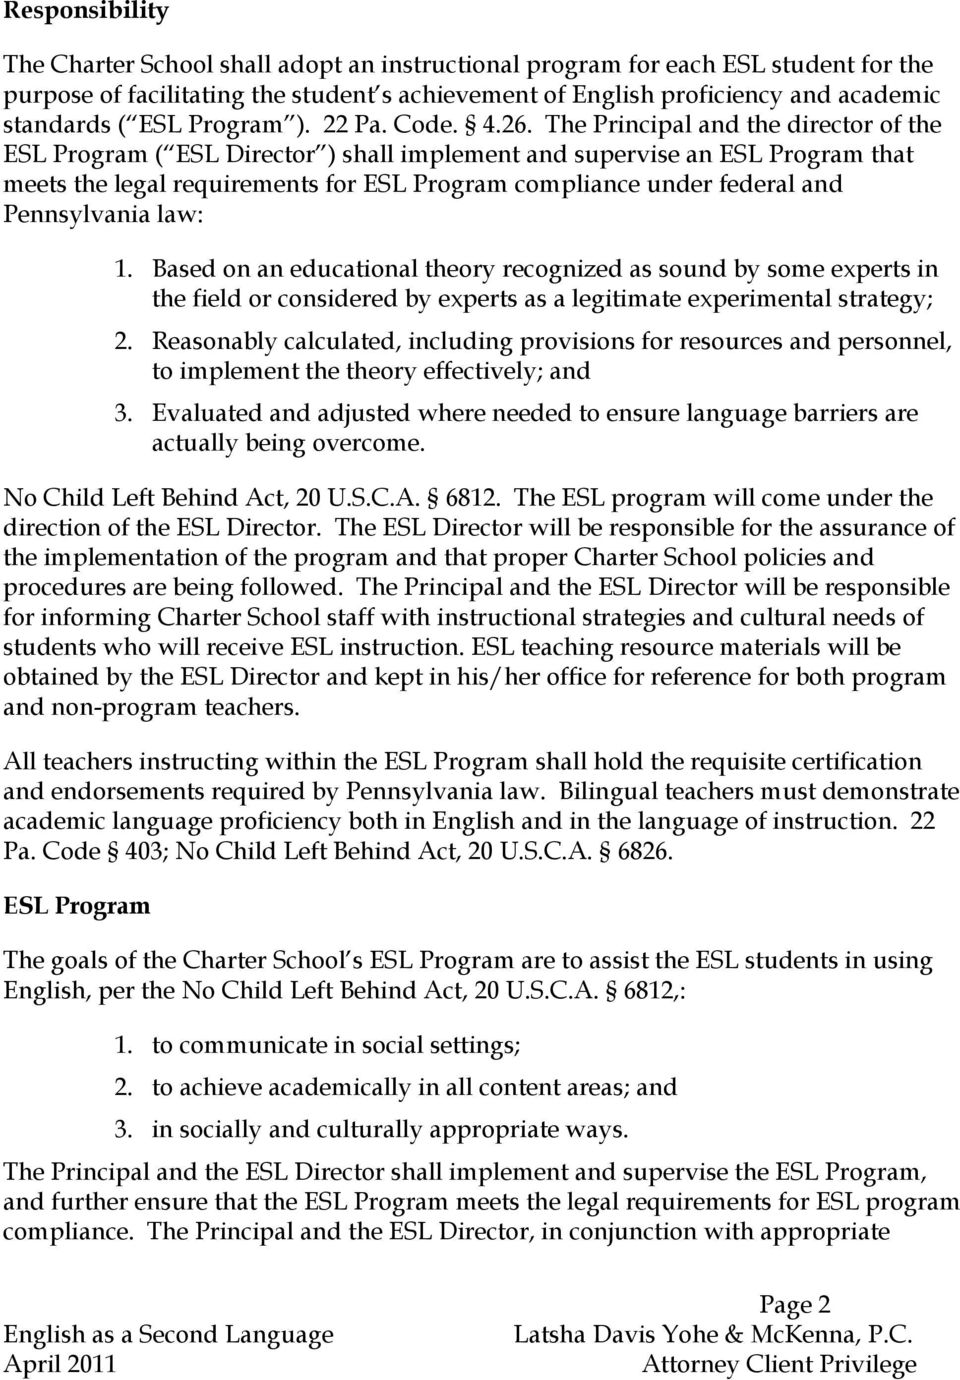 The Principal and the director of the ESL Program ( ESL Director ) shall implement and supervise an ESL Program that meets the legal requirements for ESL Program compliance under federal and